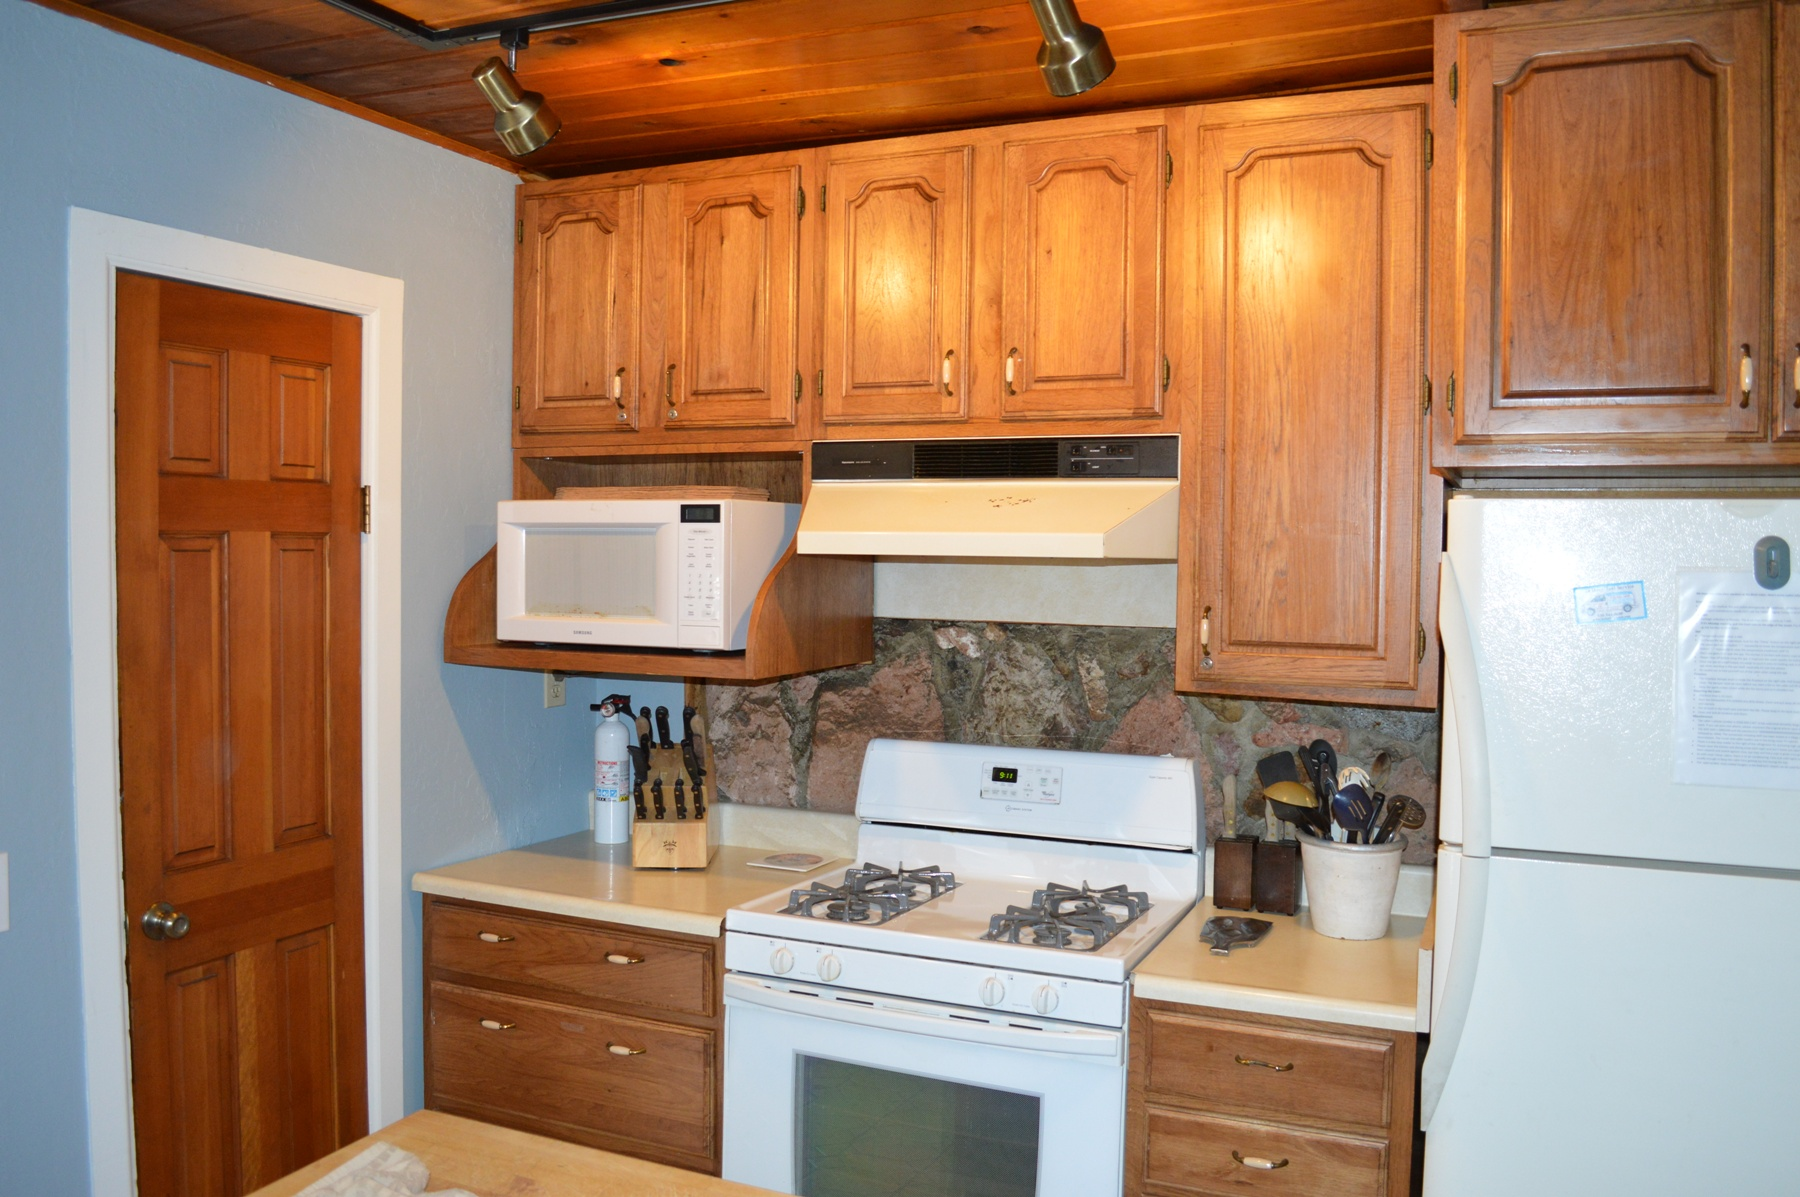 full equipped kitchen with gas stove, full size fridge, microwav